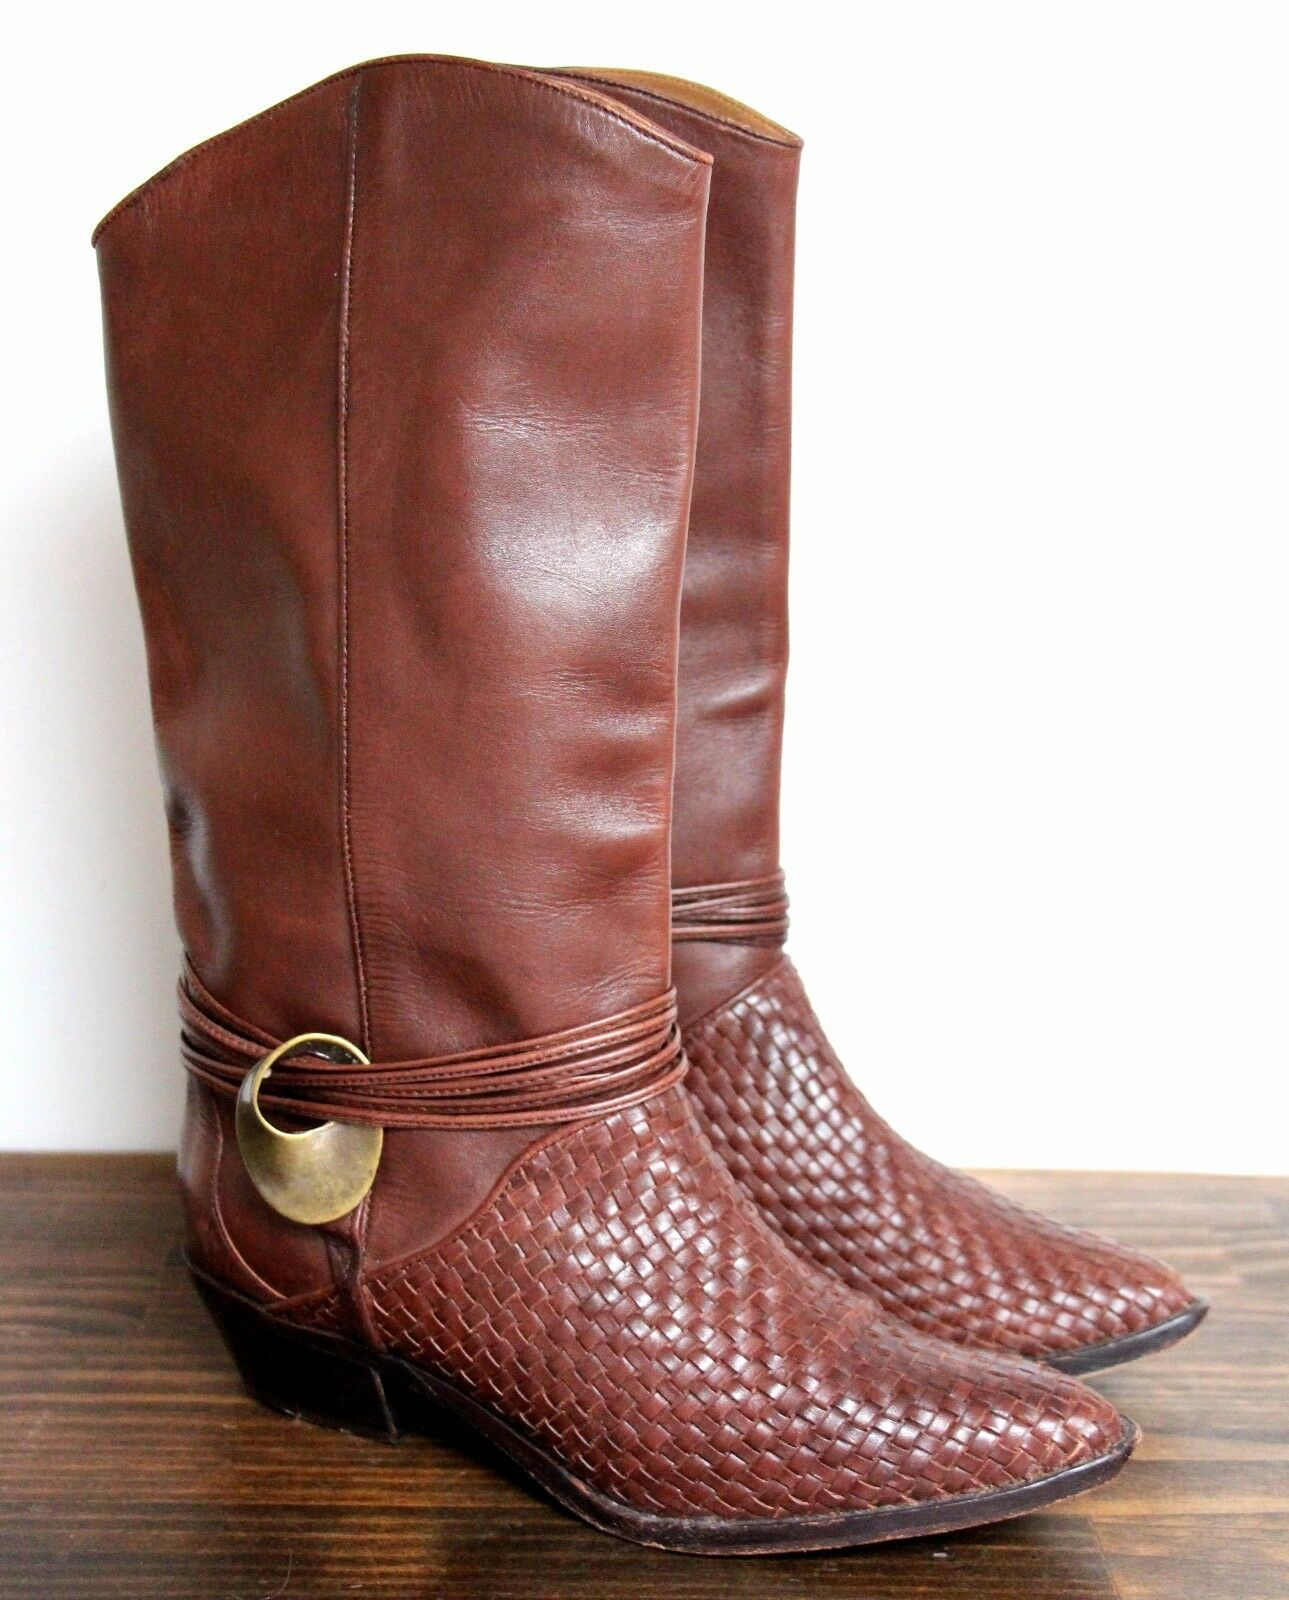 NEIL STEPHEN RICH BROWN LEATHER PULL ON MID CALF WESTERN COWGIRL BOOTS SHOES 6M